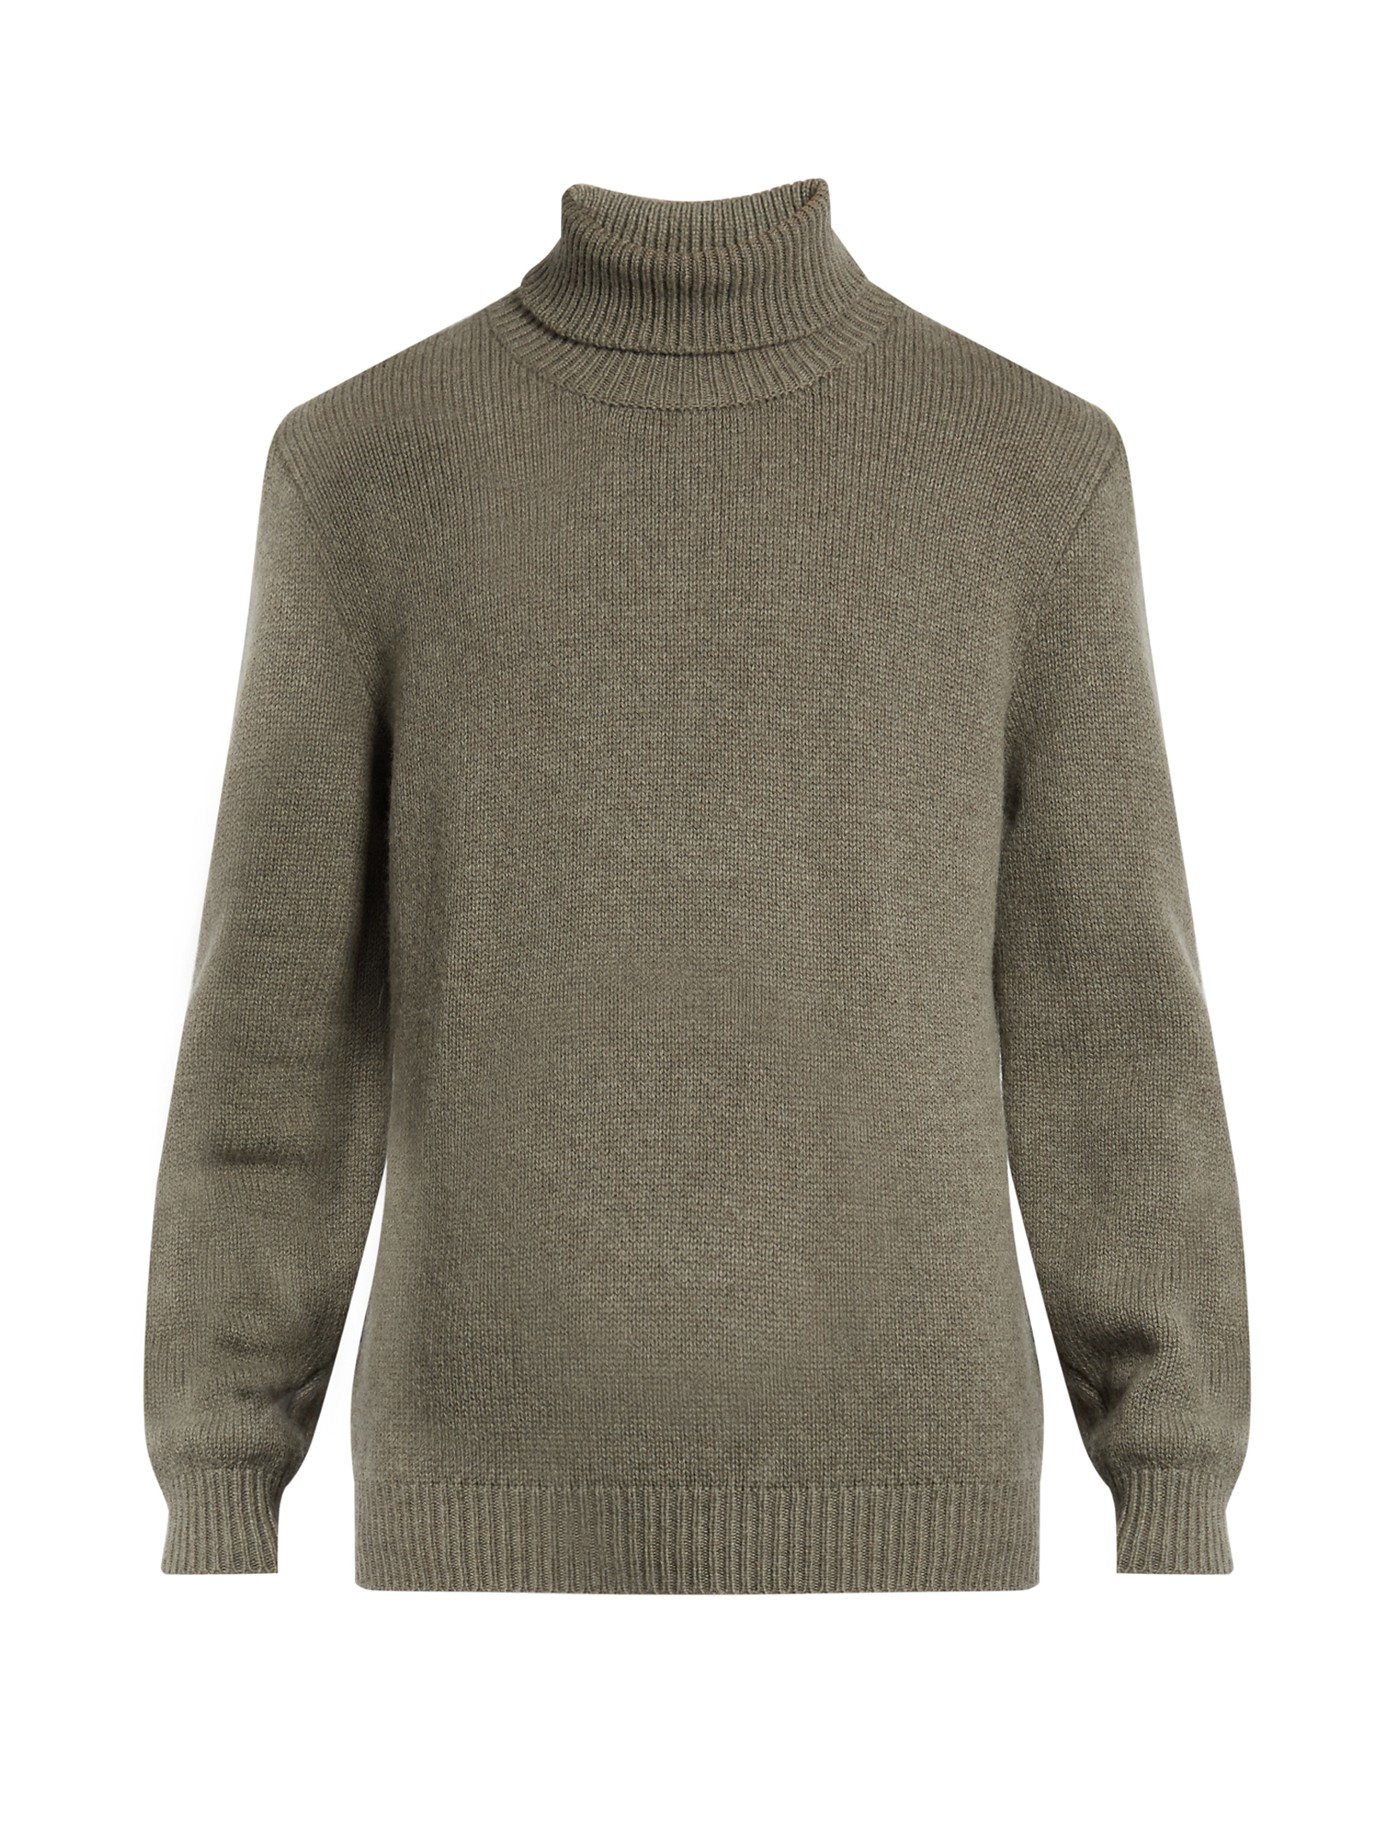 Massimo alba Roll-neck Wool Sweater in Gray for Men